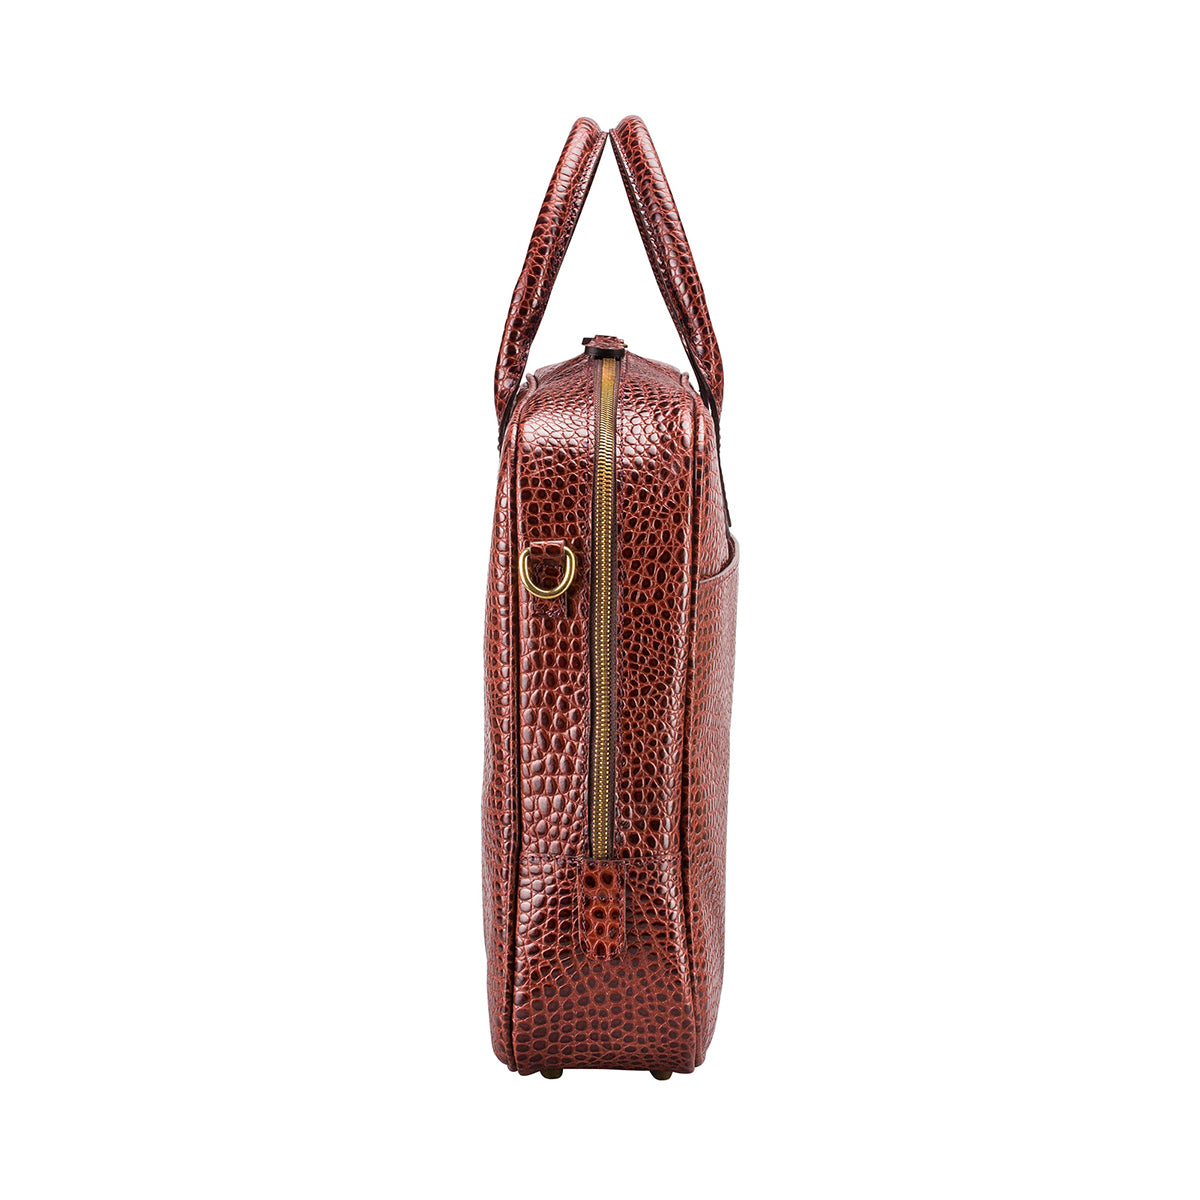 Image 3 of the 'Calvino' Chestnut Croco Veg-Tanned Leather Briefcase